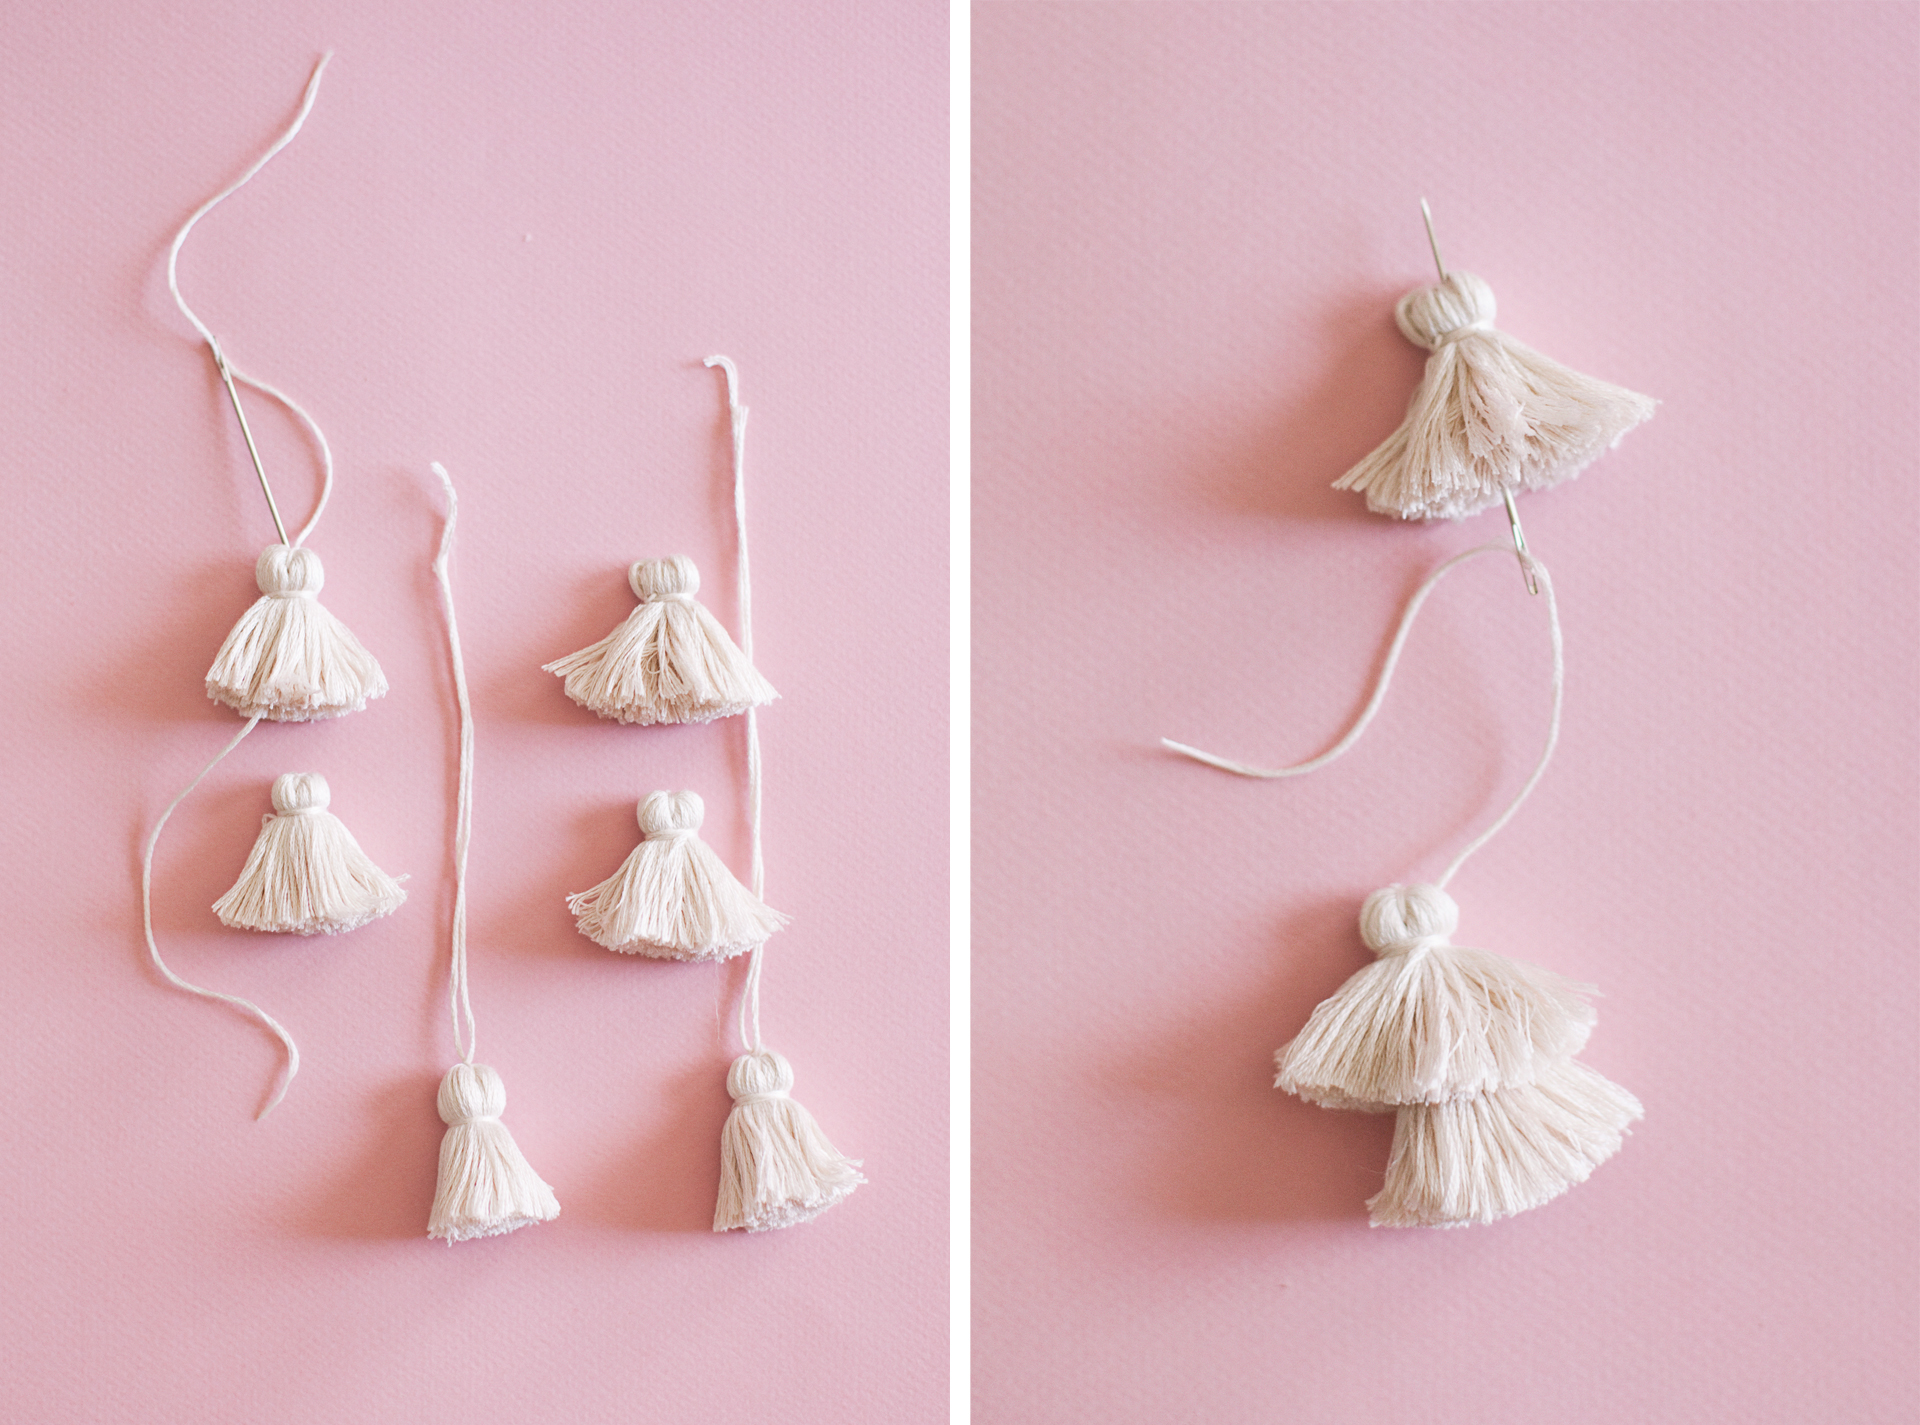 DIY Tiered Tassel Earrings